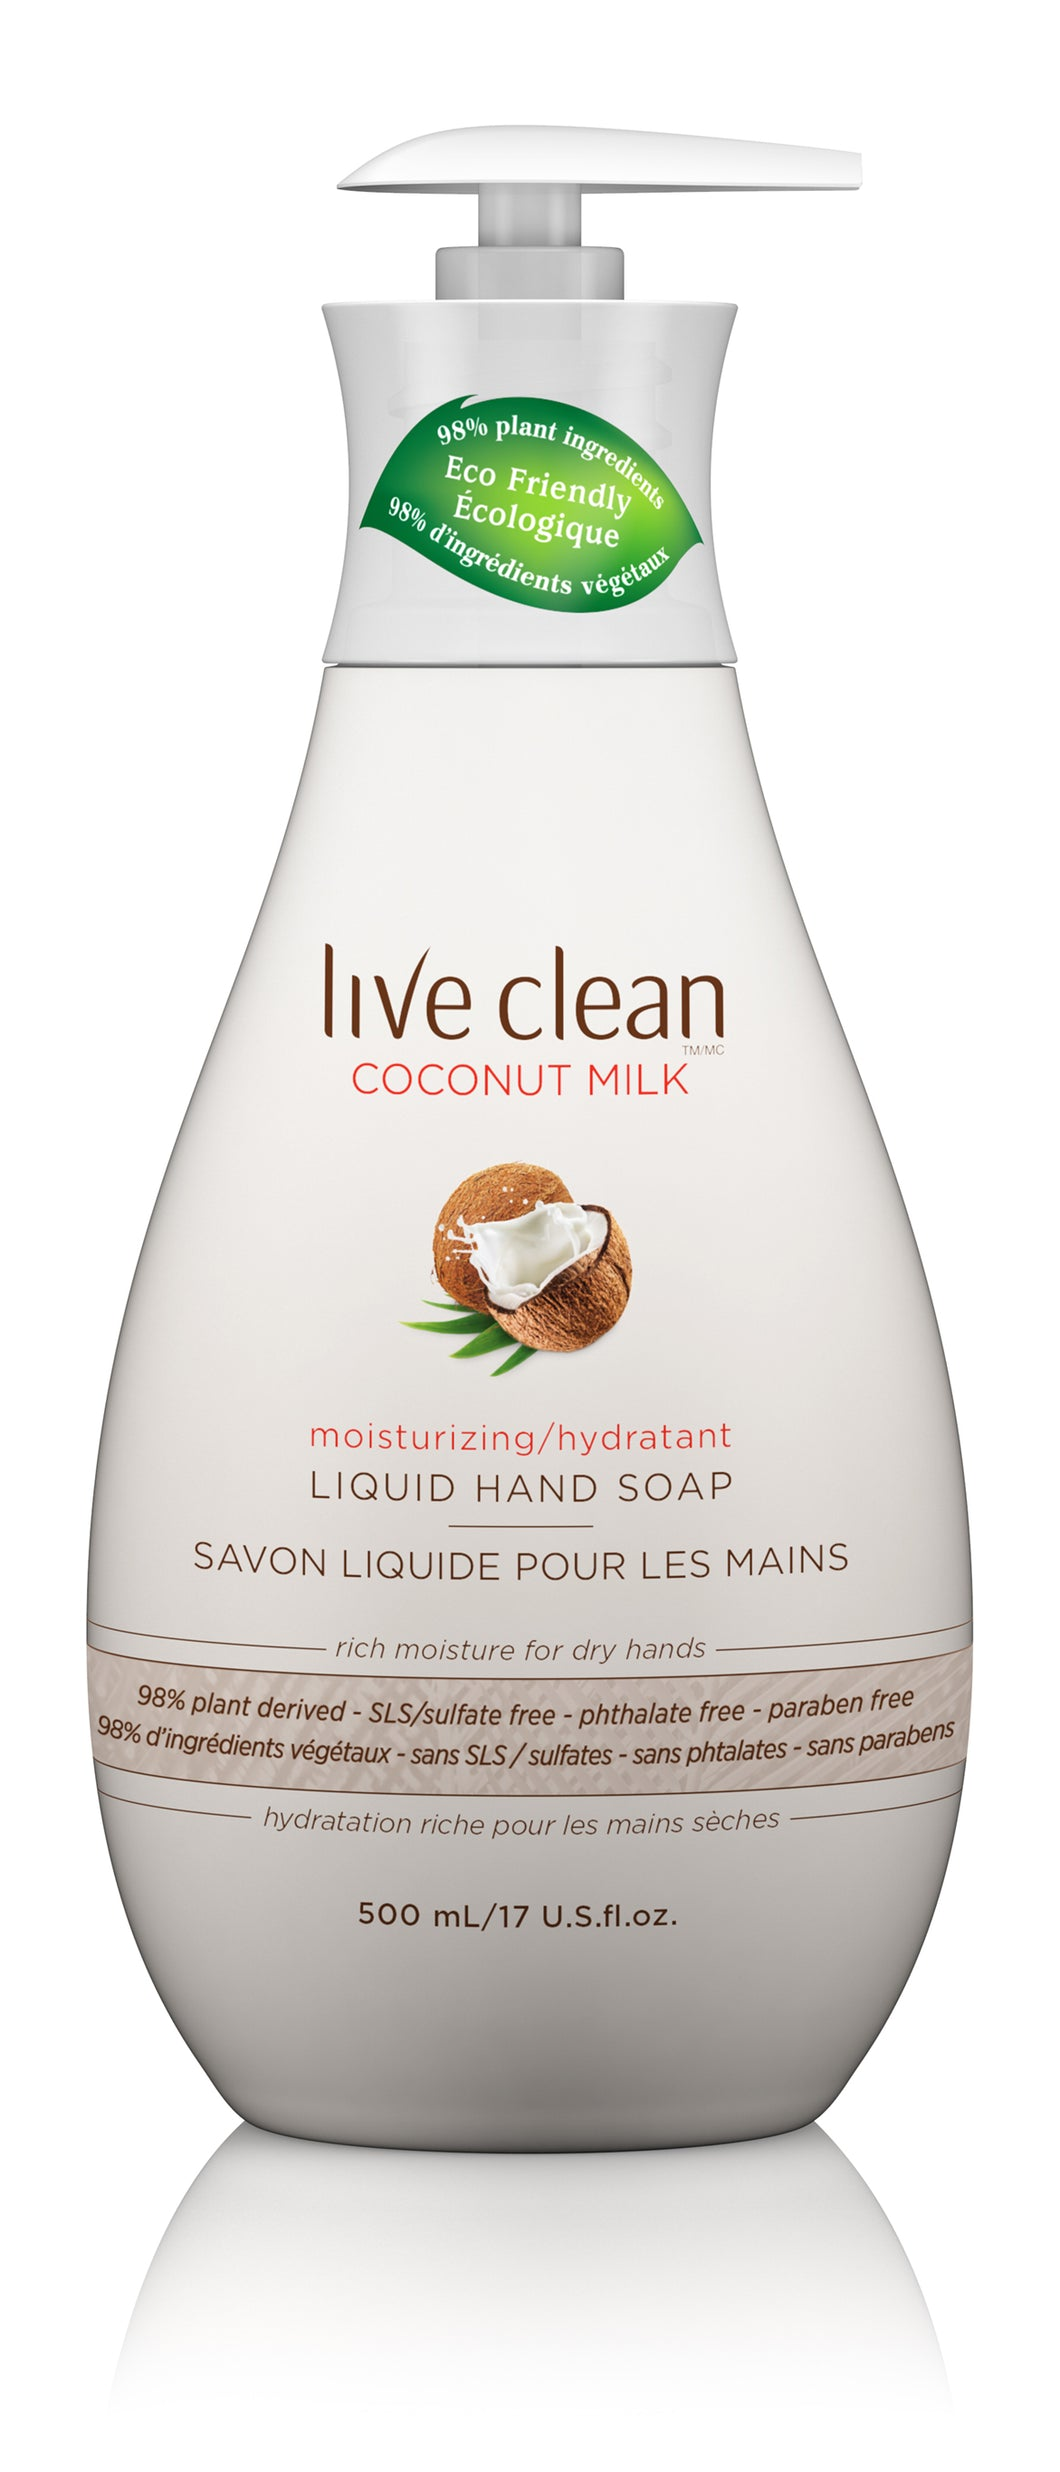 Coconut Milk Moisturizing Hand Soap, 17 oz.